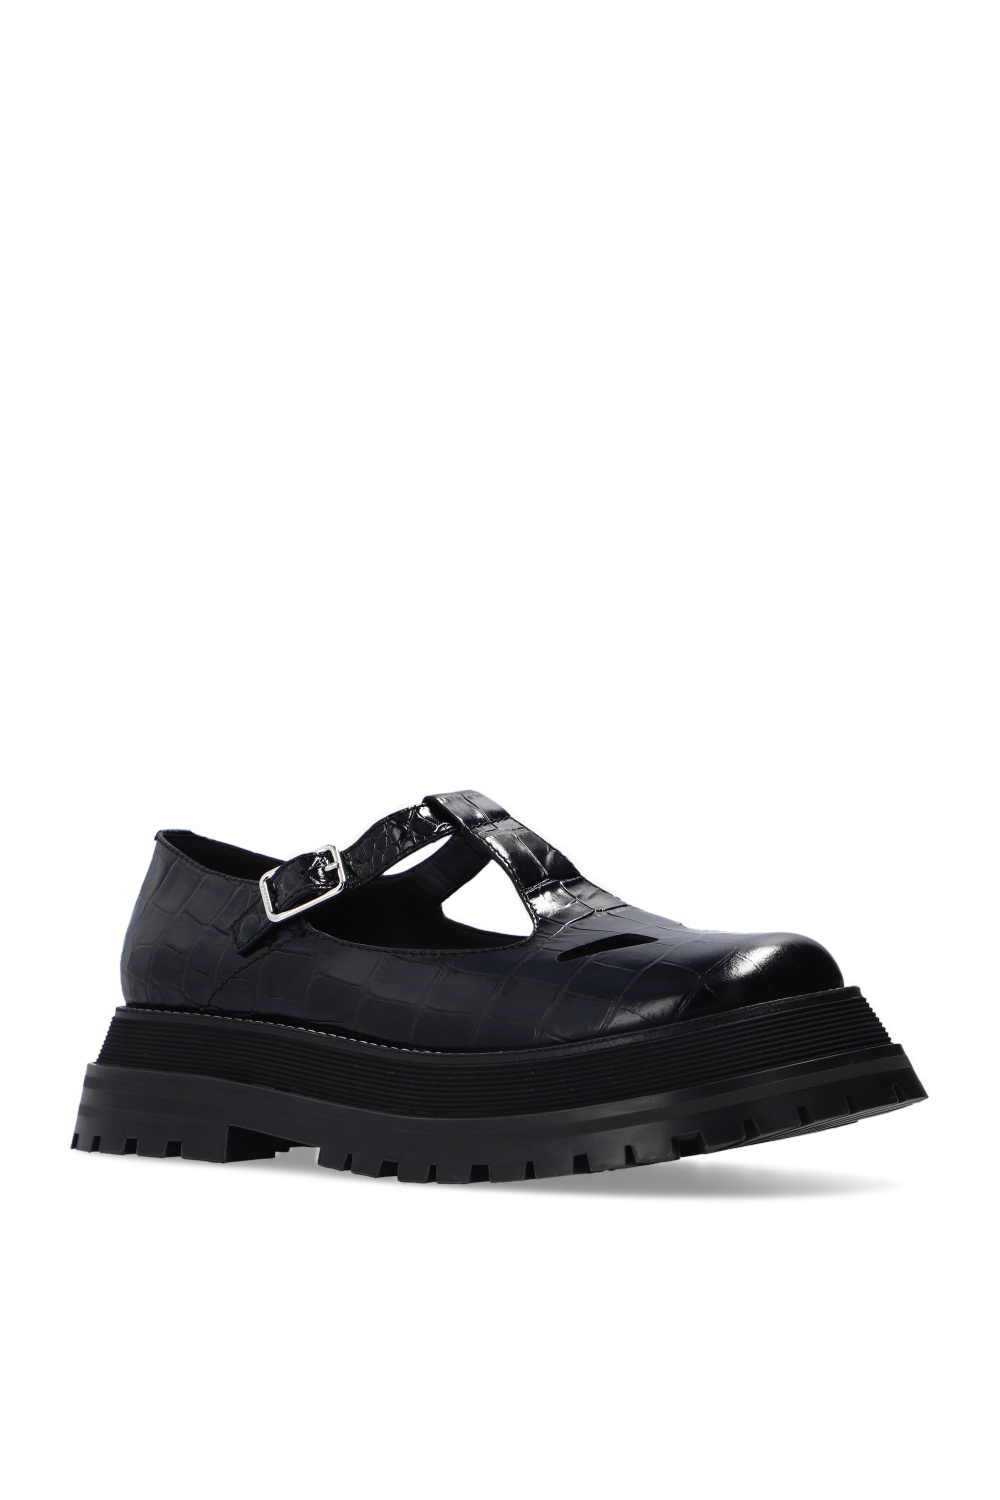 Burberry 'T-Bar' leather shoes